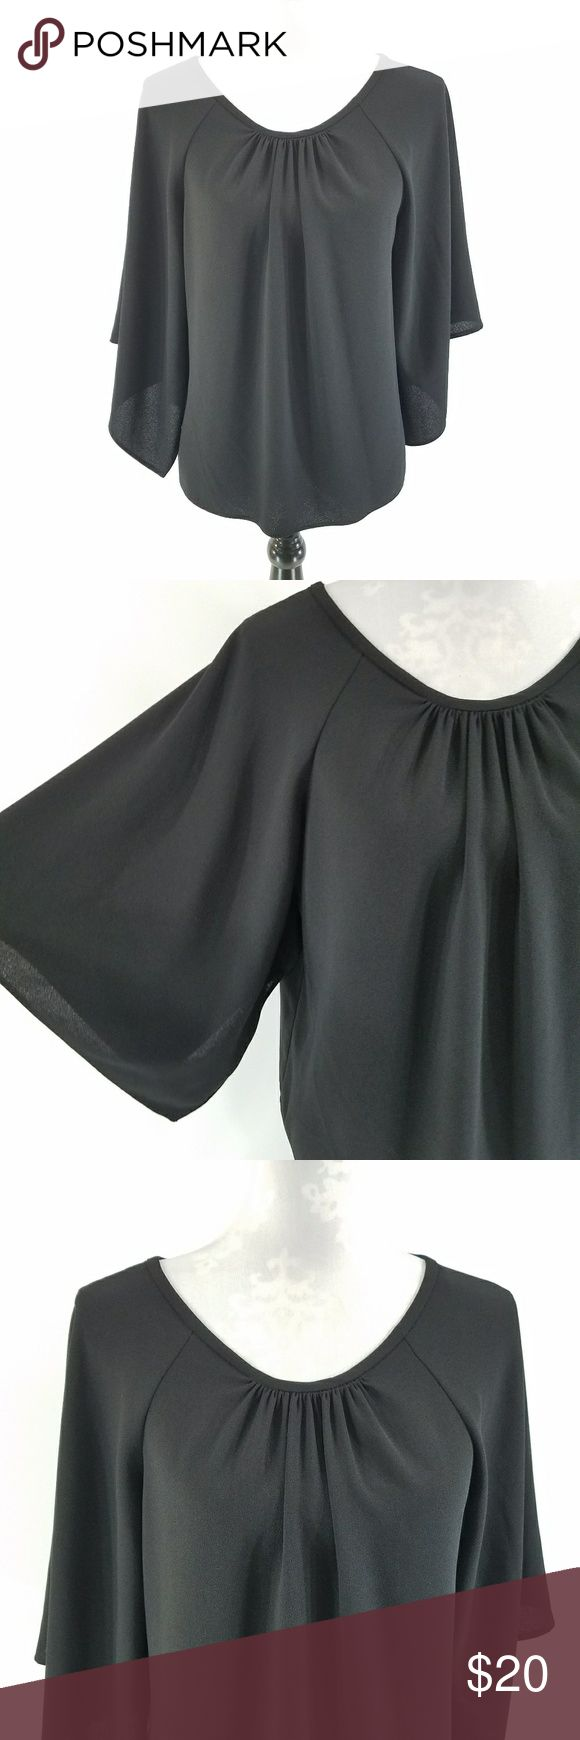 "Zara Black Batwing Top Women's Zara Top  No Material Tag  Size Large  Gently Used EUC   Measurements Laying Flat:  Underarm to Underarm: 22""  Length: 25.5"" Zara Tops"